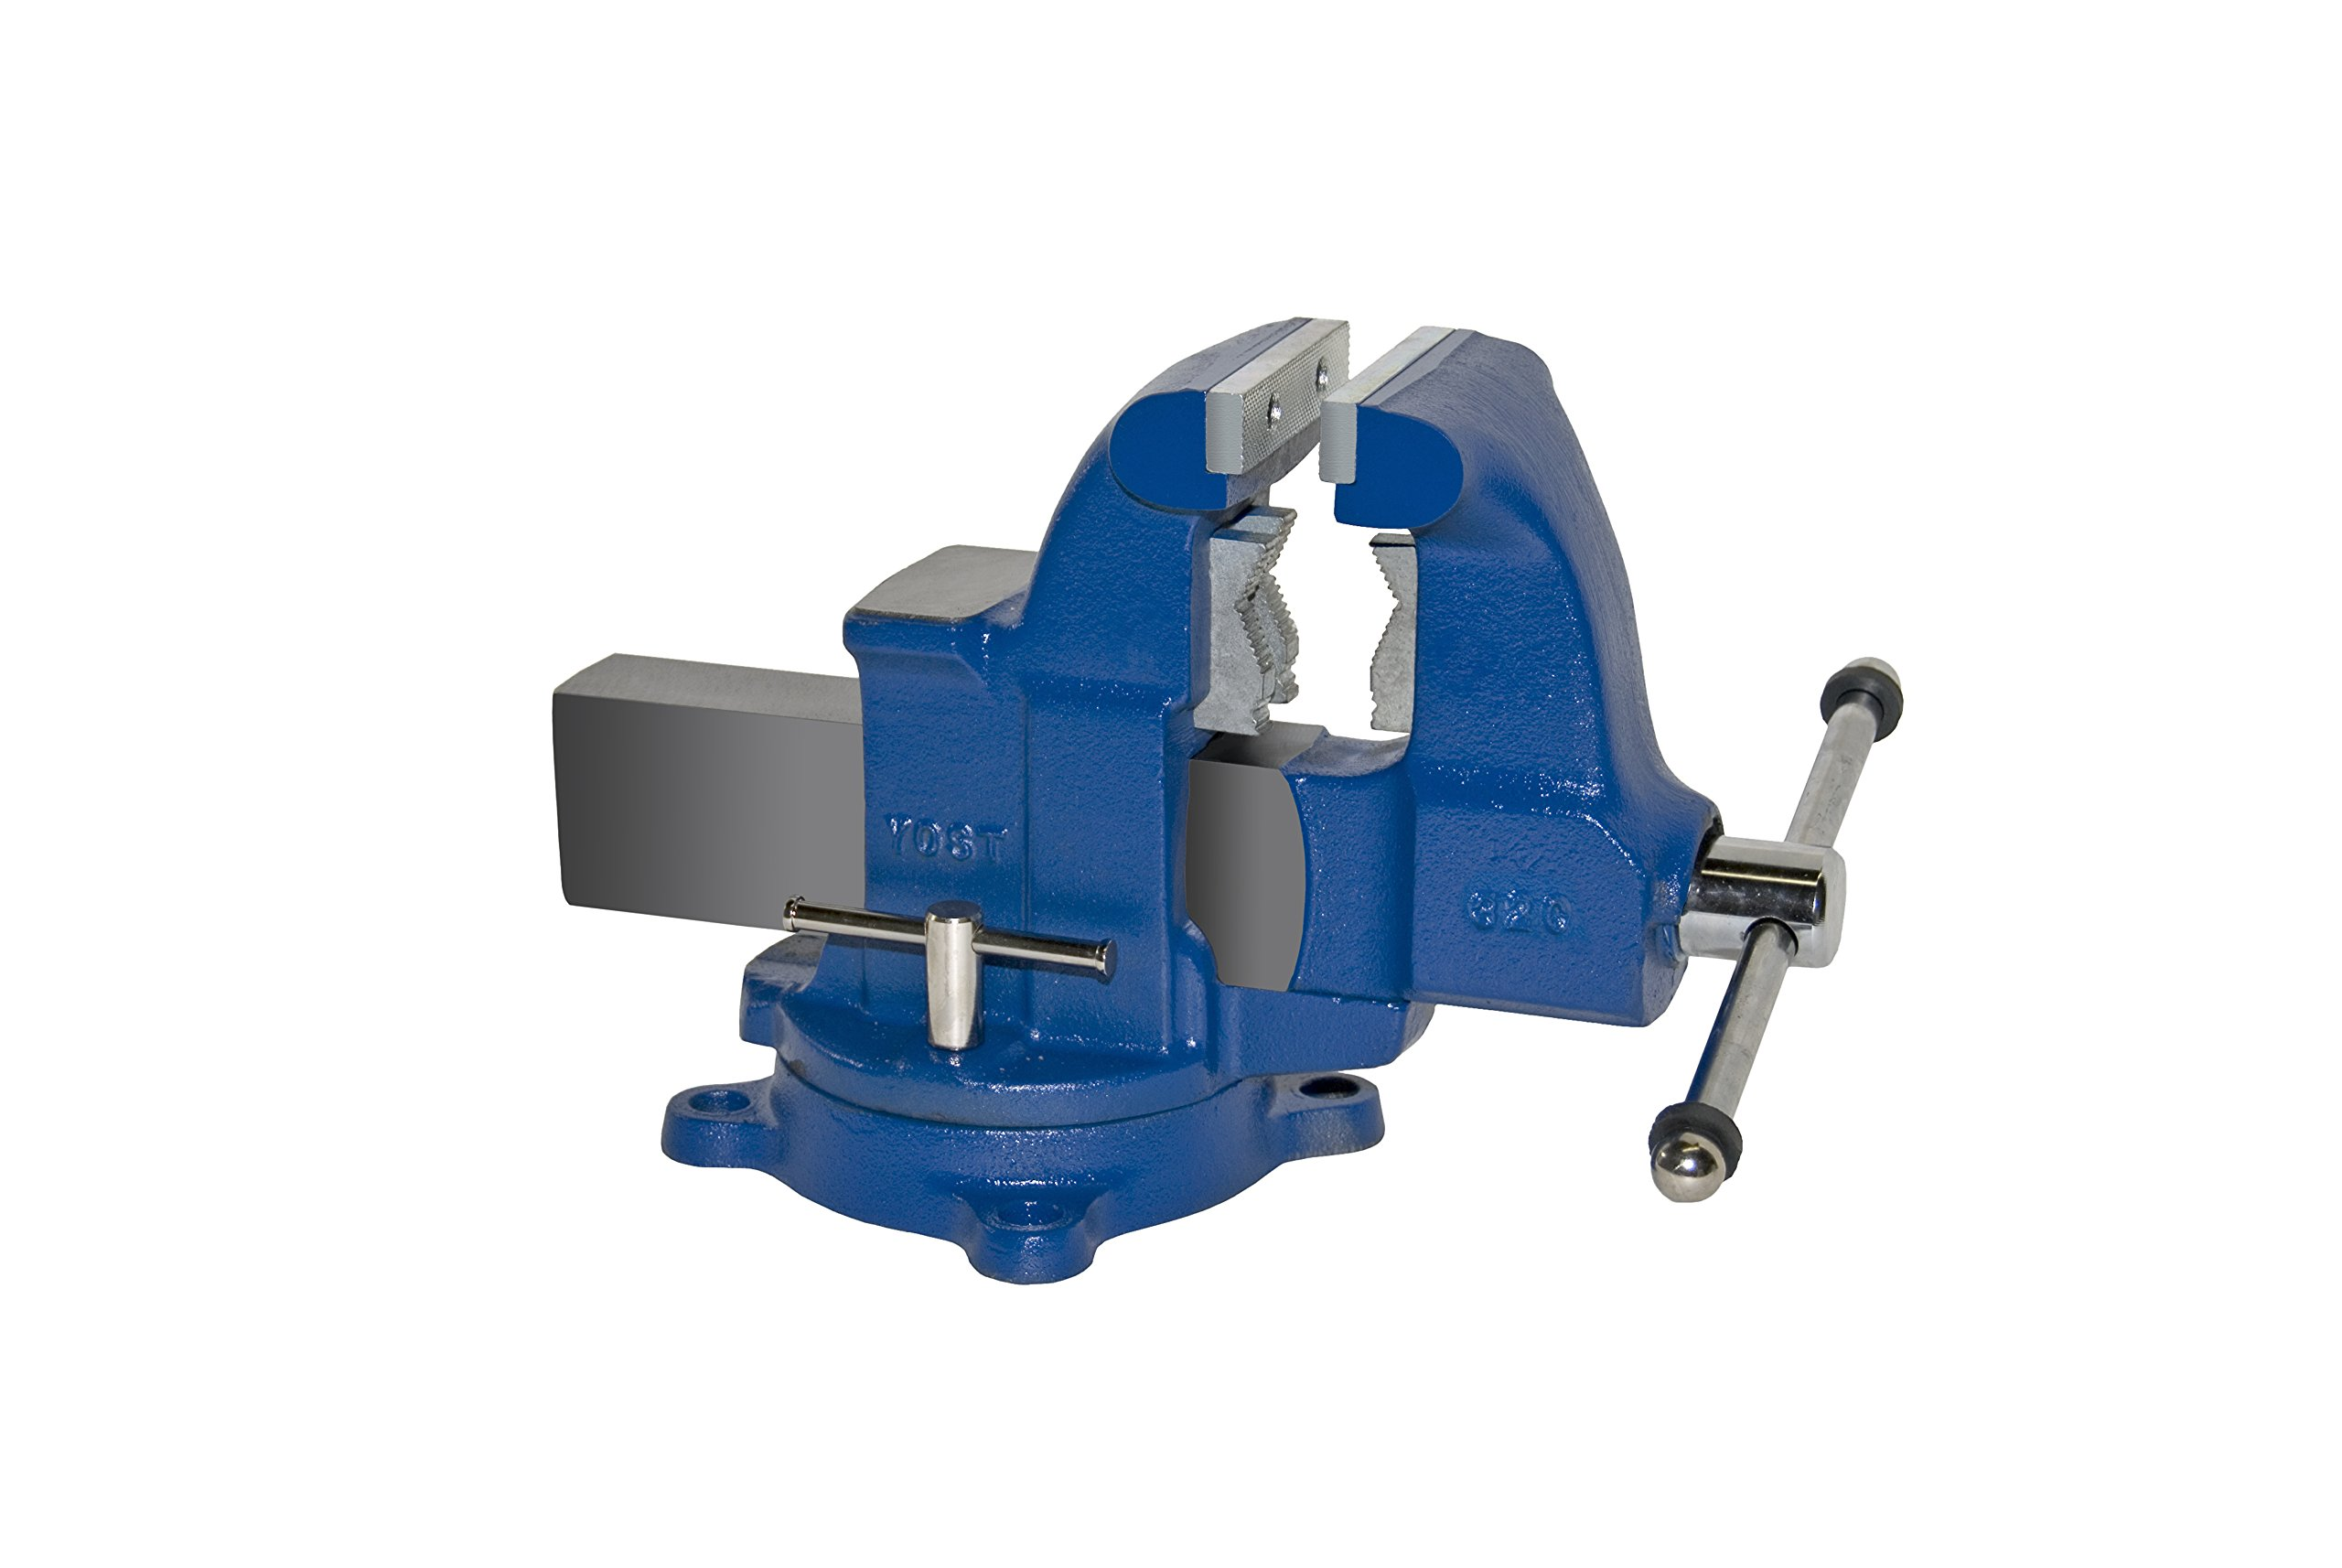 Yost Vises 32C 4.5'' Combination Pipe and Bench Vise with 360-Degree Swivel Base, Made in US